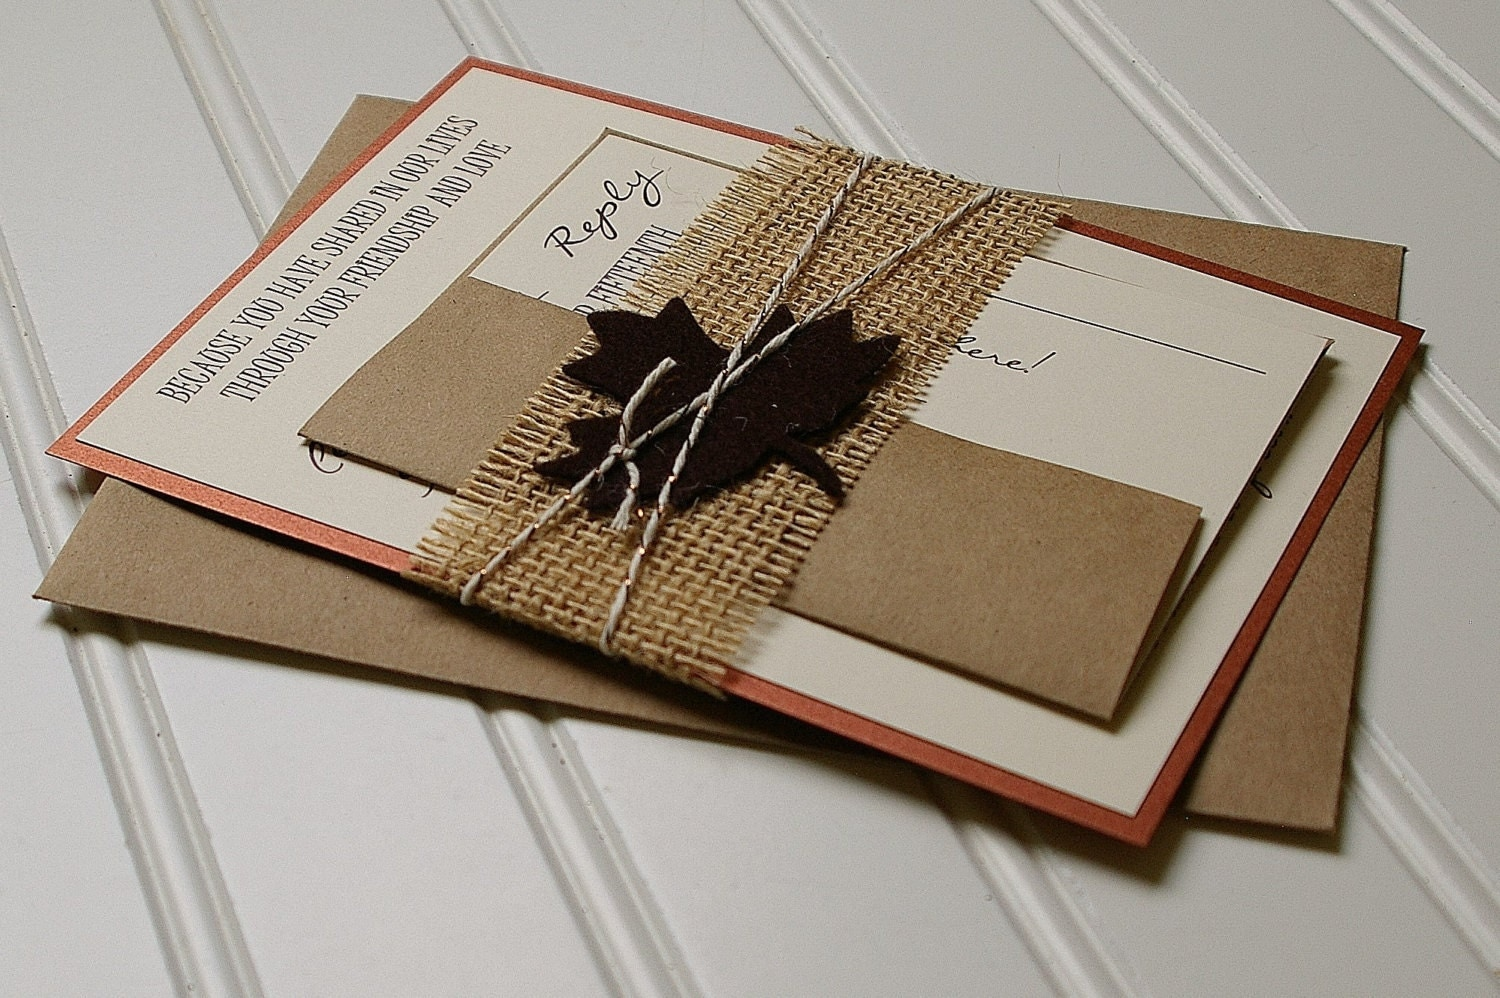 Wedding Invitations Handmade: Rustic Autumn Wedding Invitations: Copper Brown And Burlap